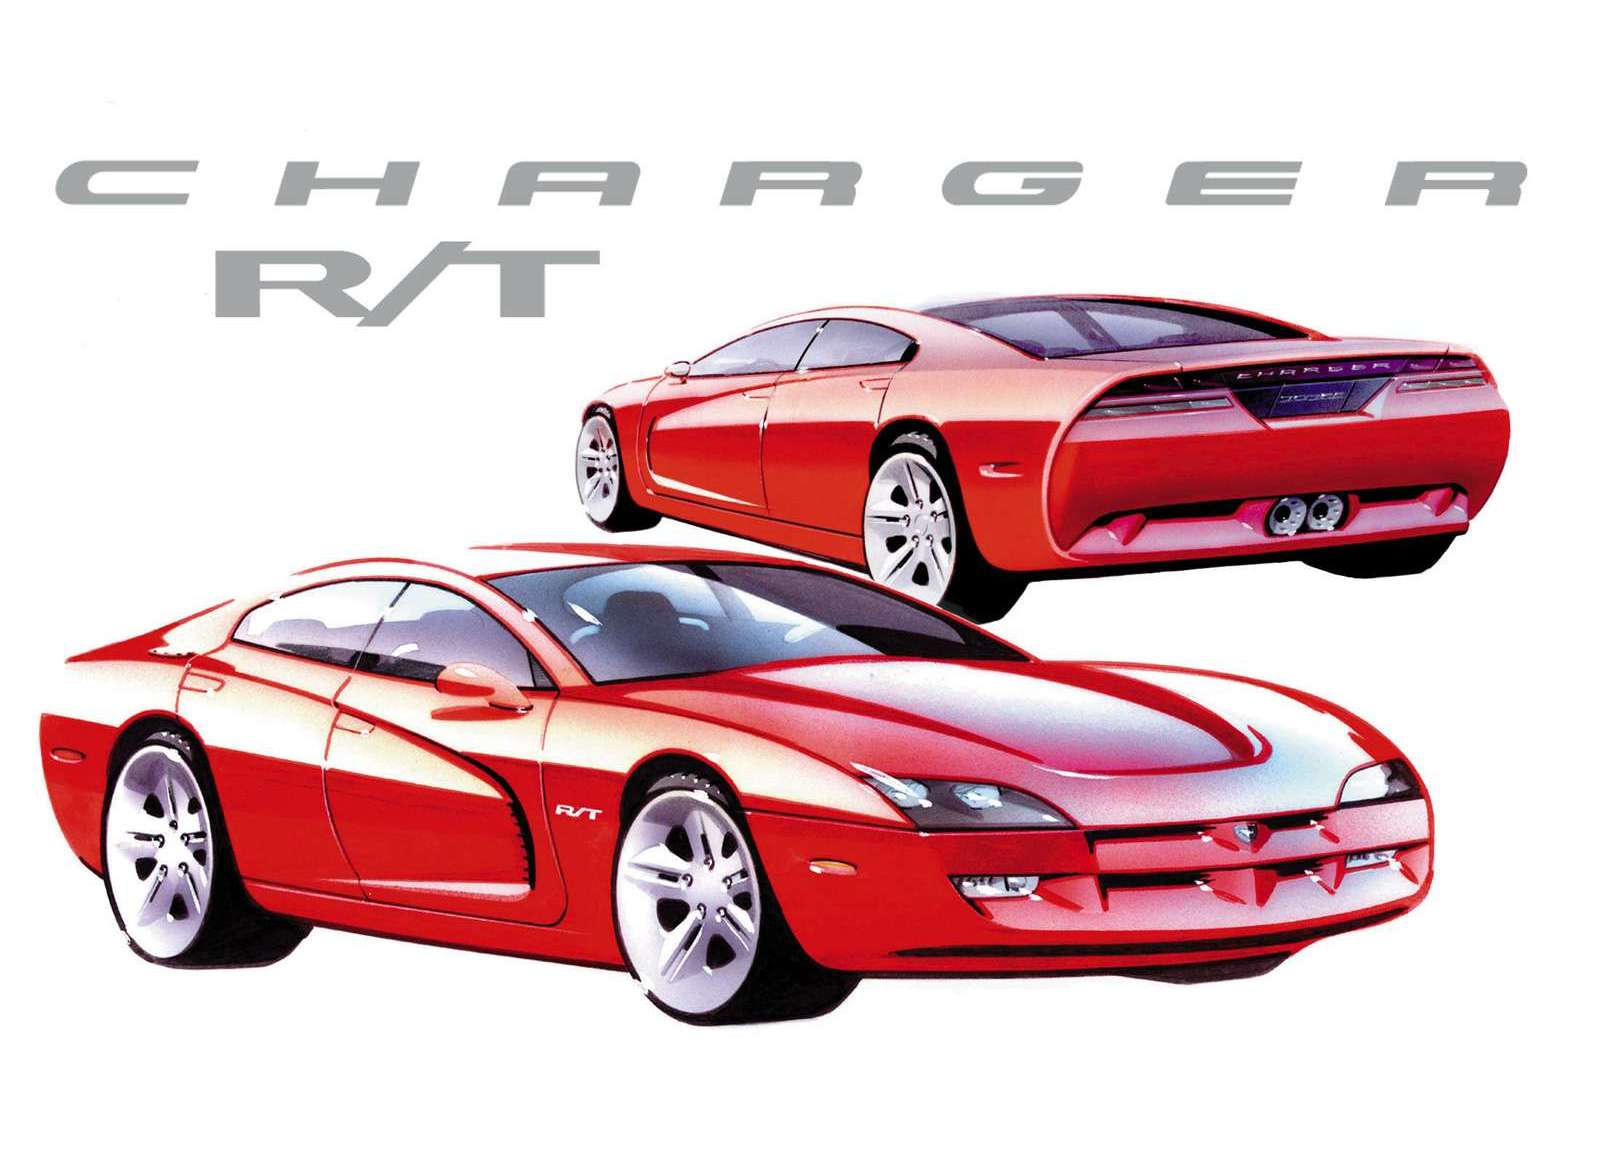 ... 1999 Dodge Charger RT Concept